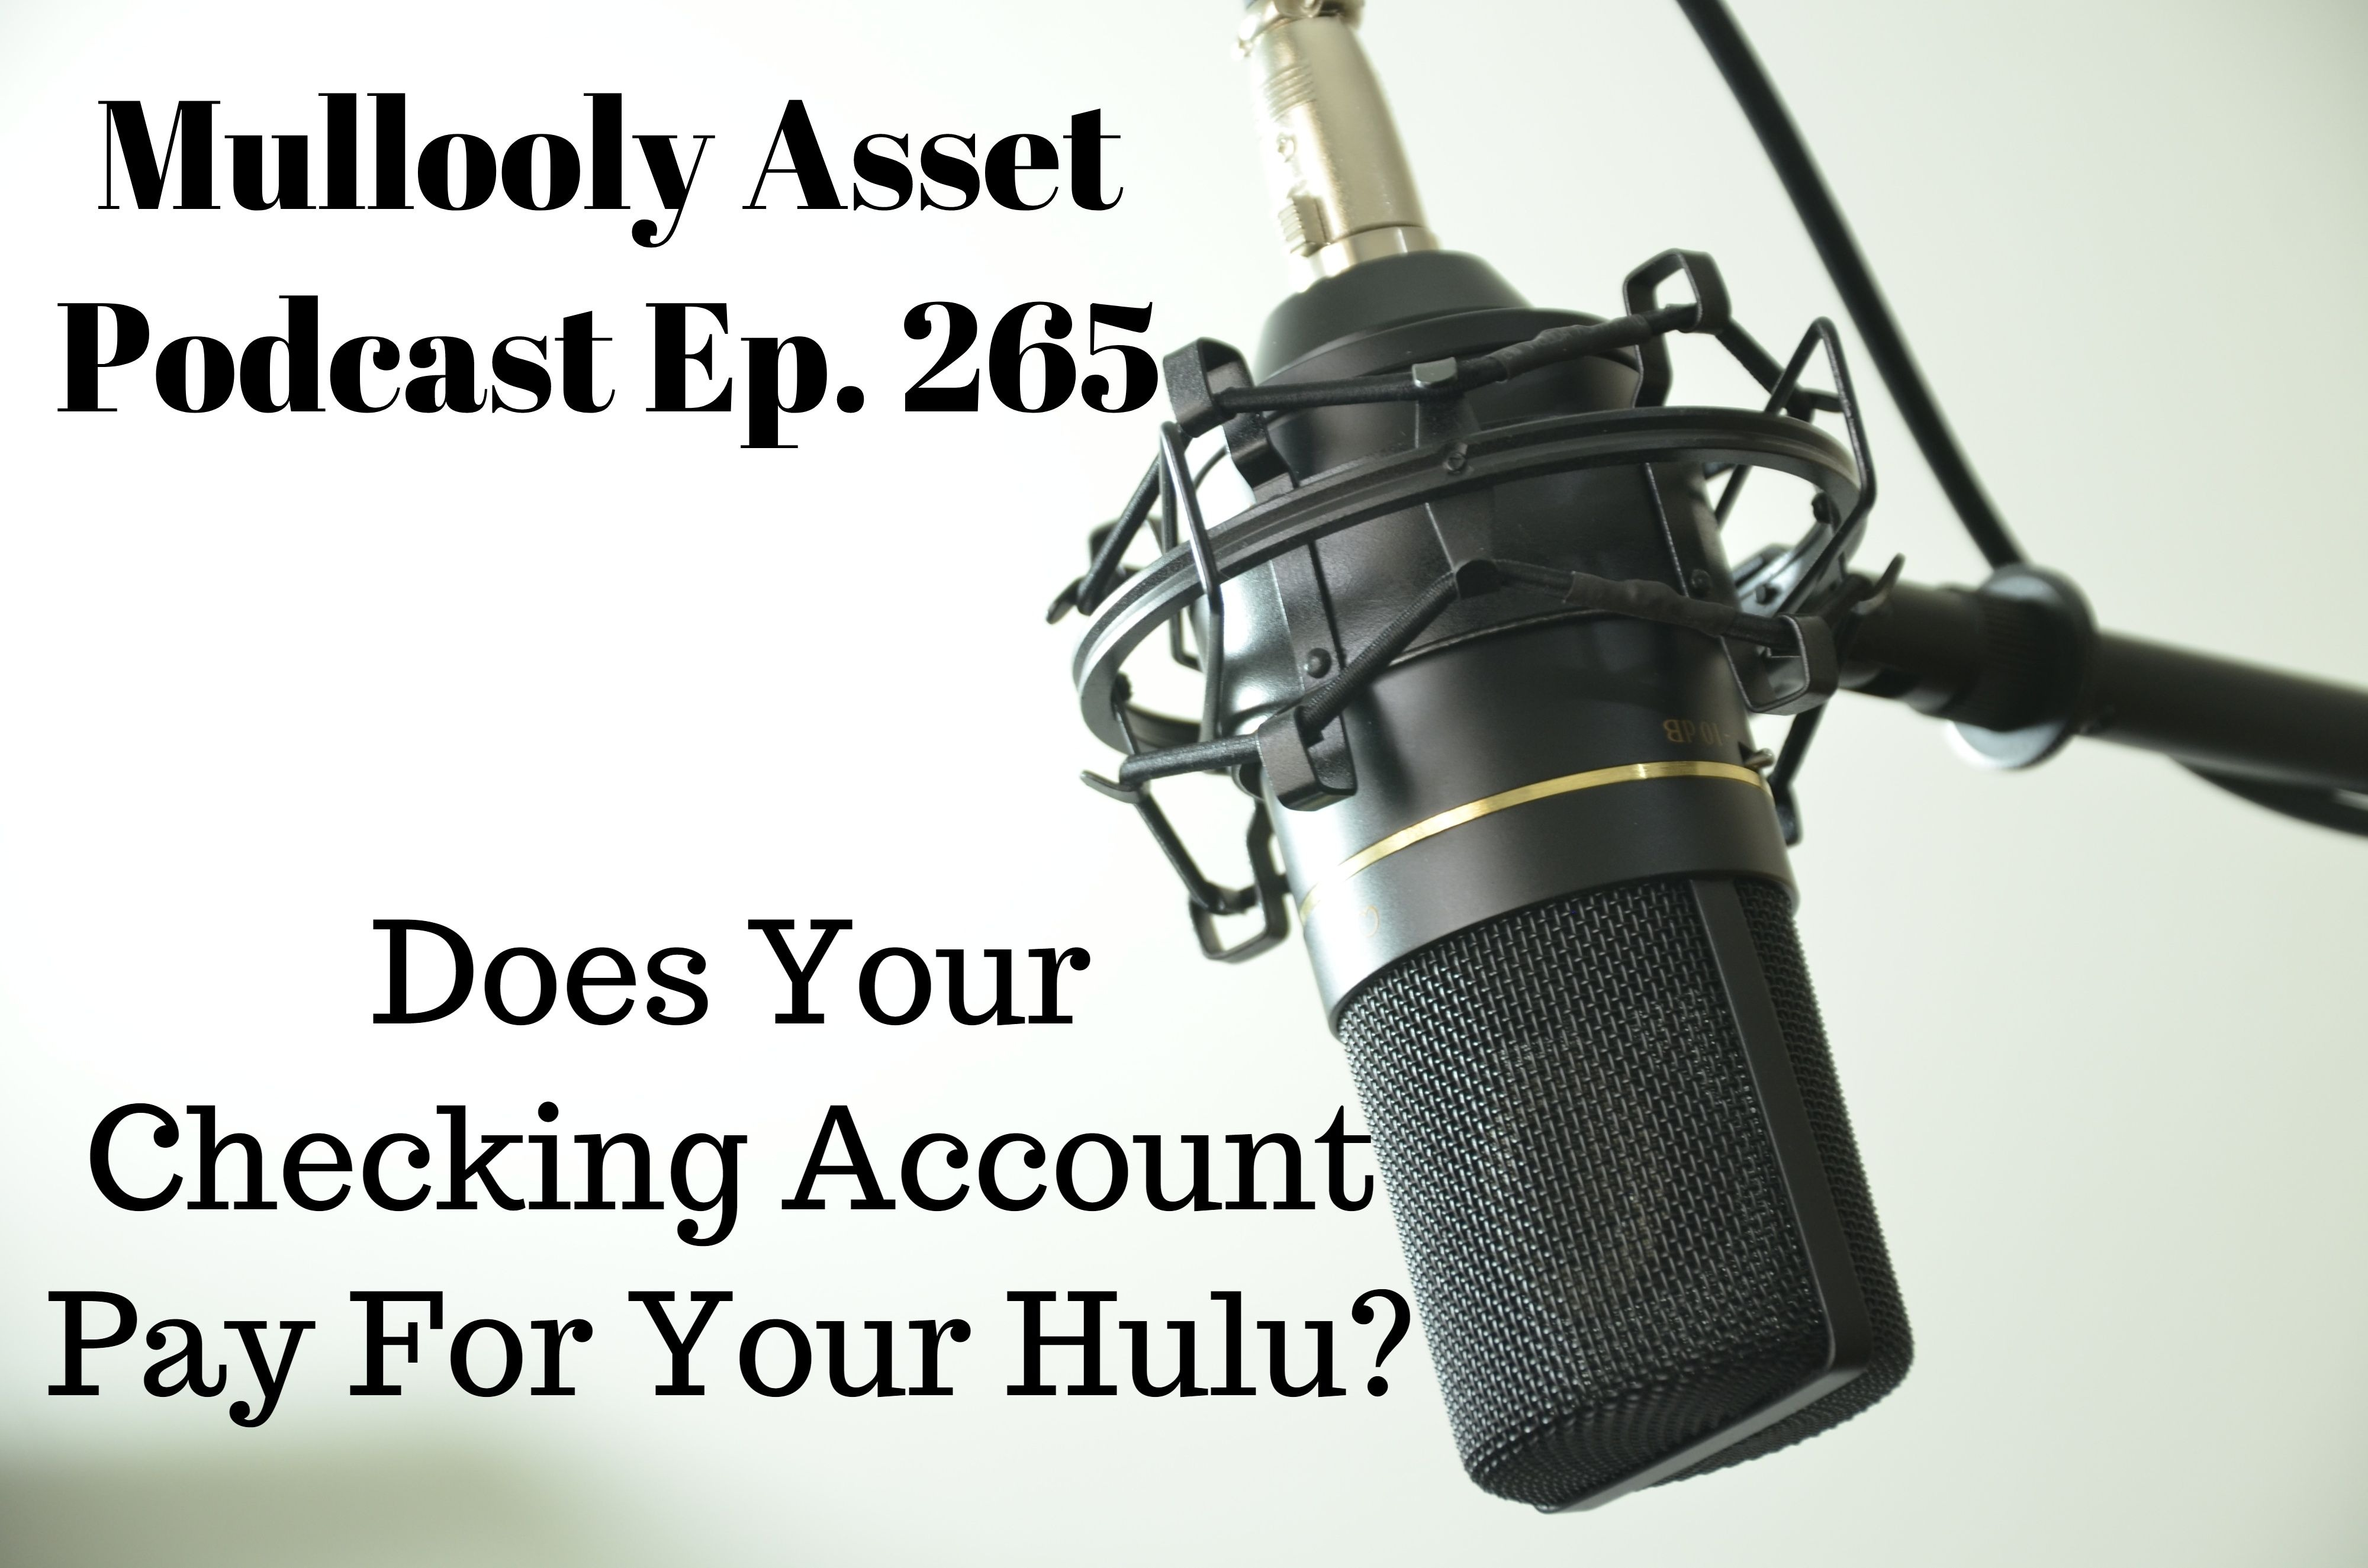 Does Your Checking Account Pay For Your Hulu?